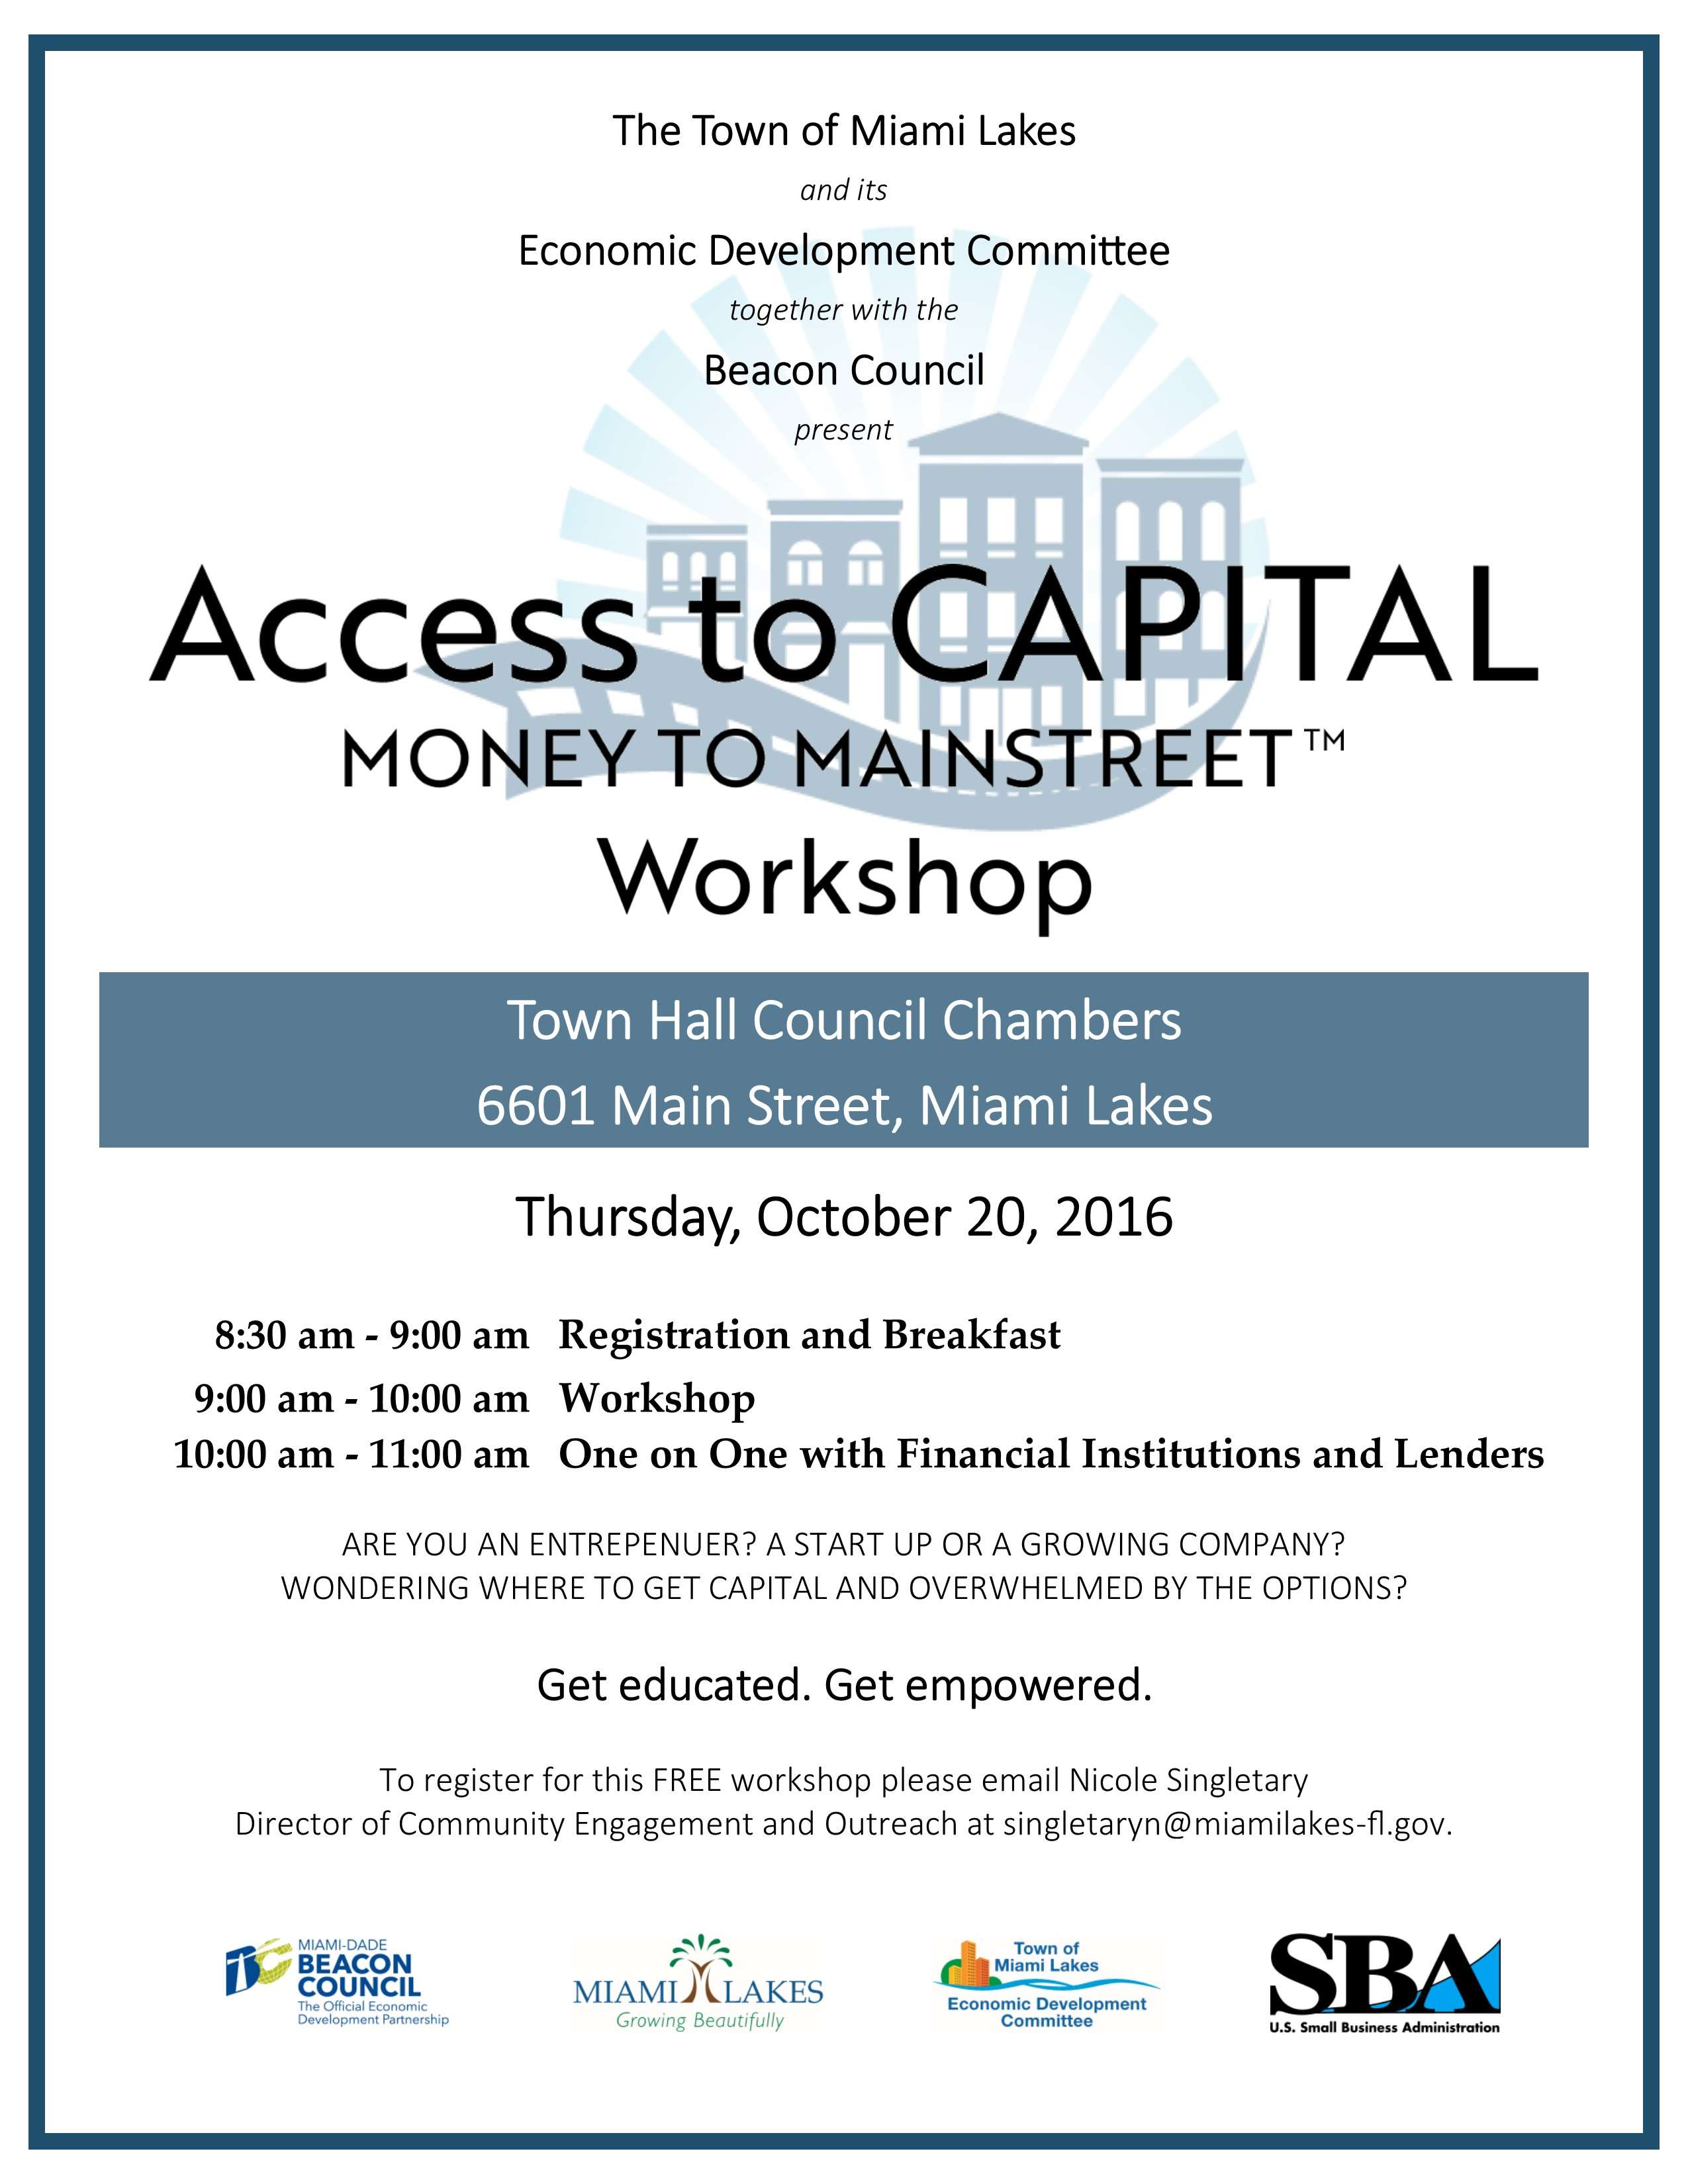 Access to Capital Workshop